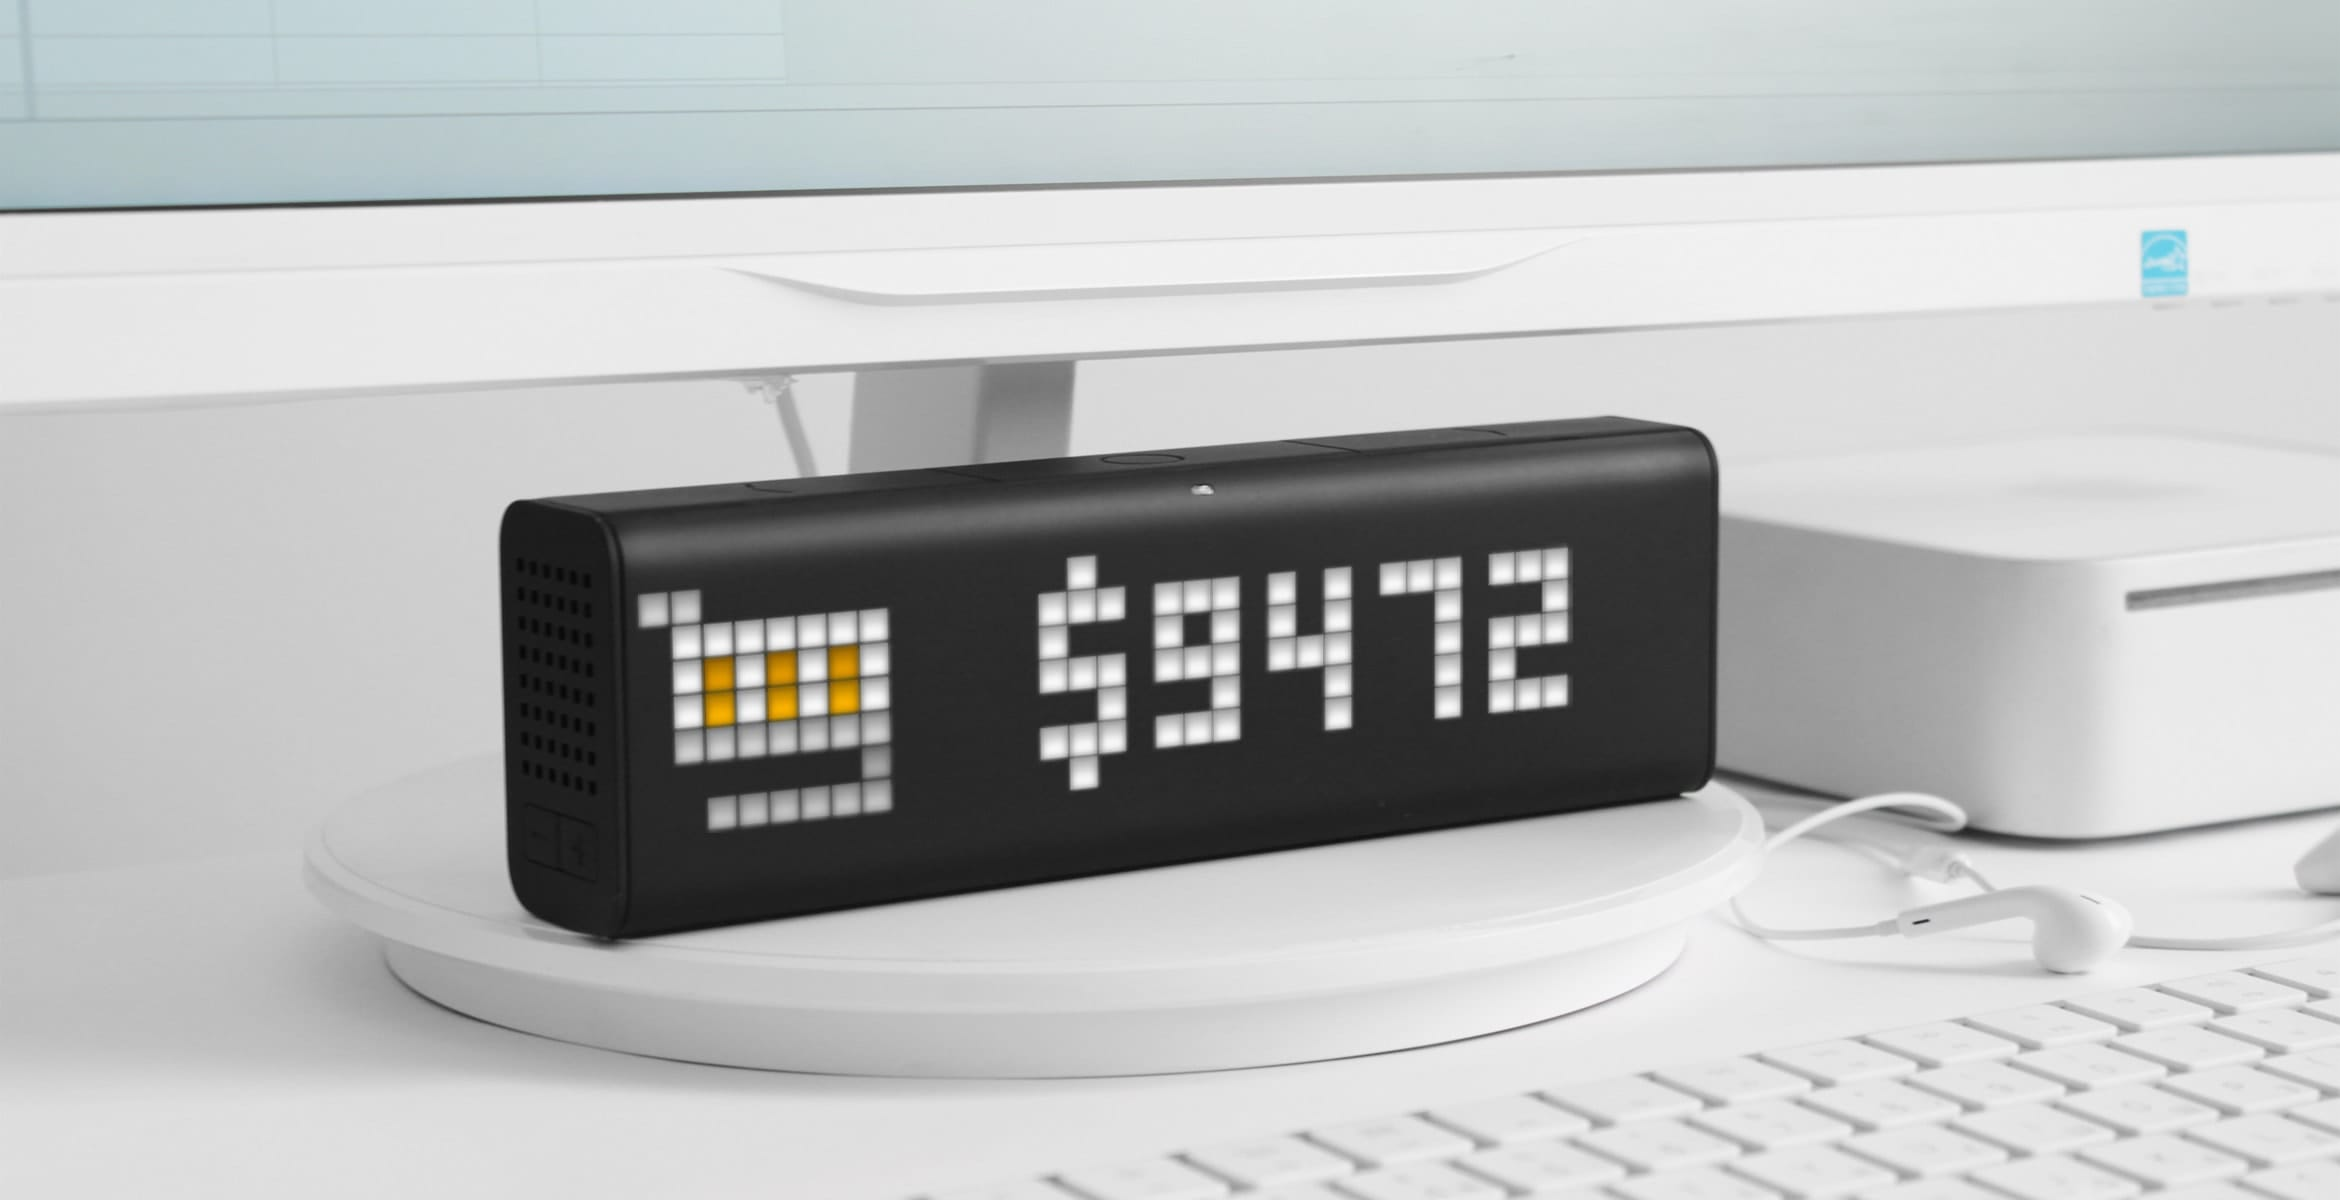 LaMetric Time smart clock complements the desk setup and displays revenue of the e-commerce